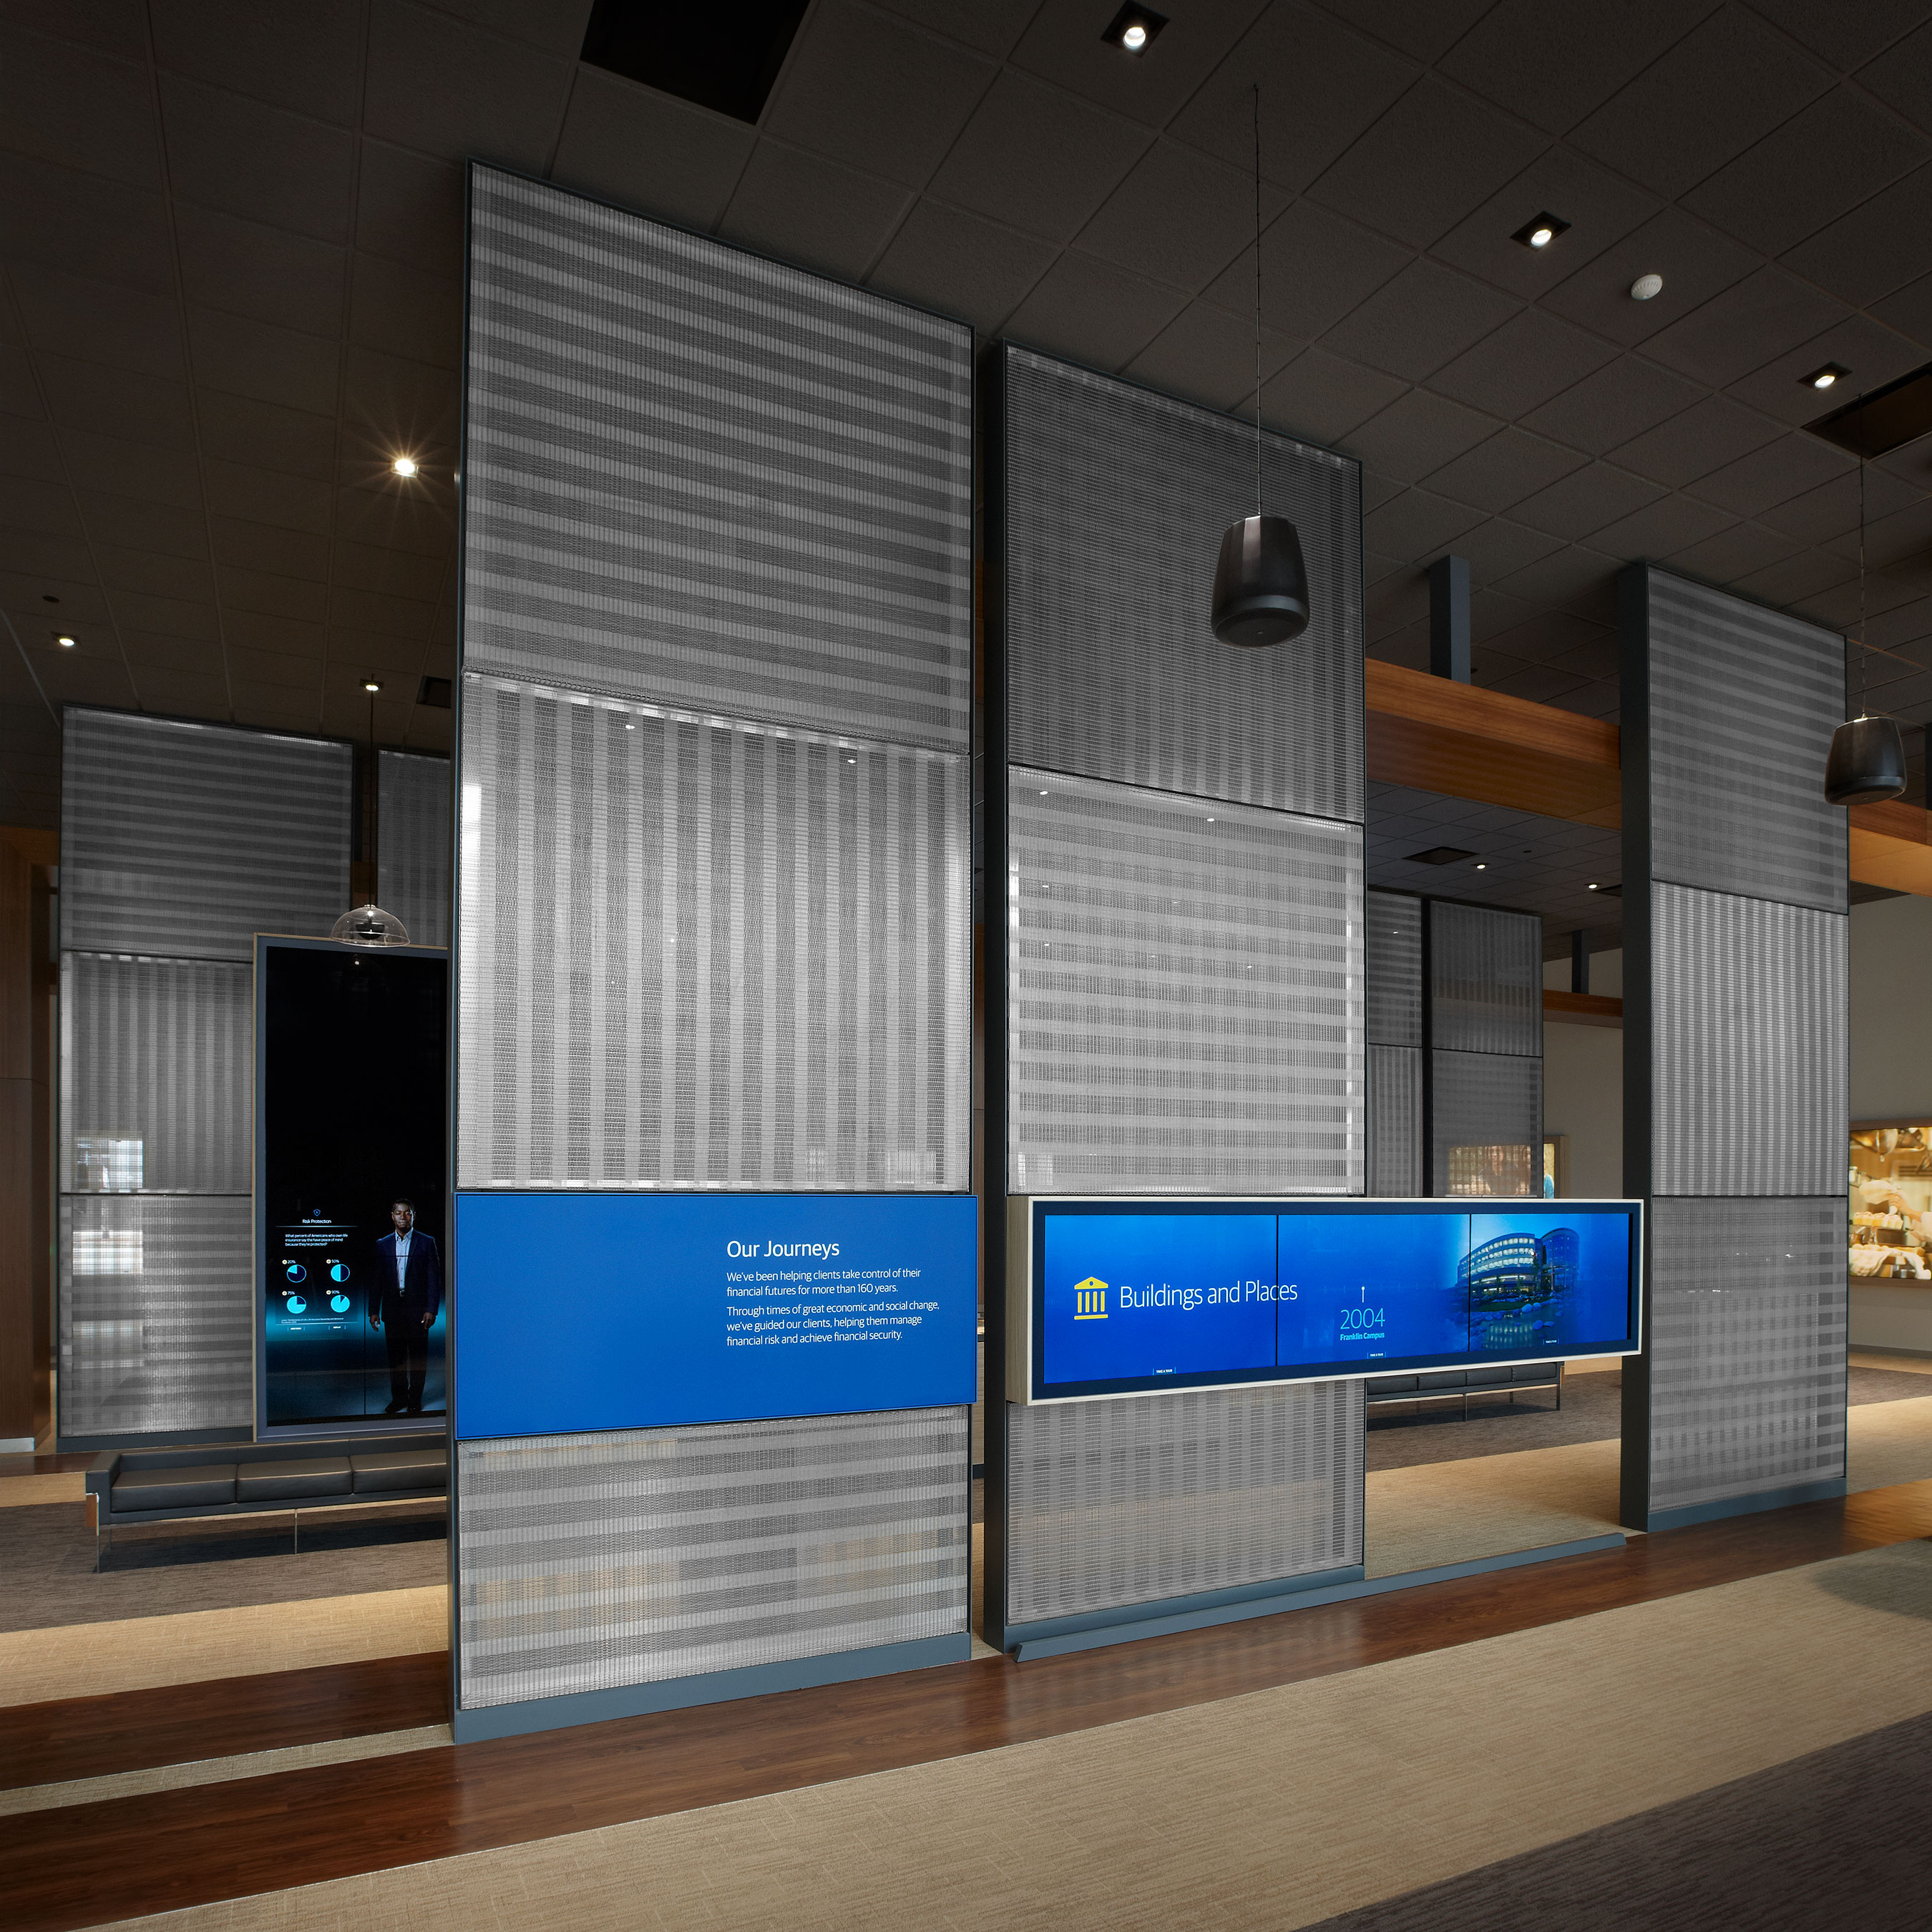 Downstream, the designer of the experience, thoughtfully crafted the exhibit space.